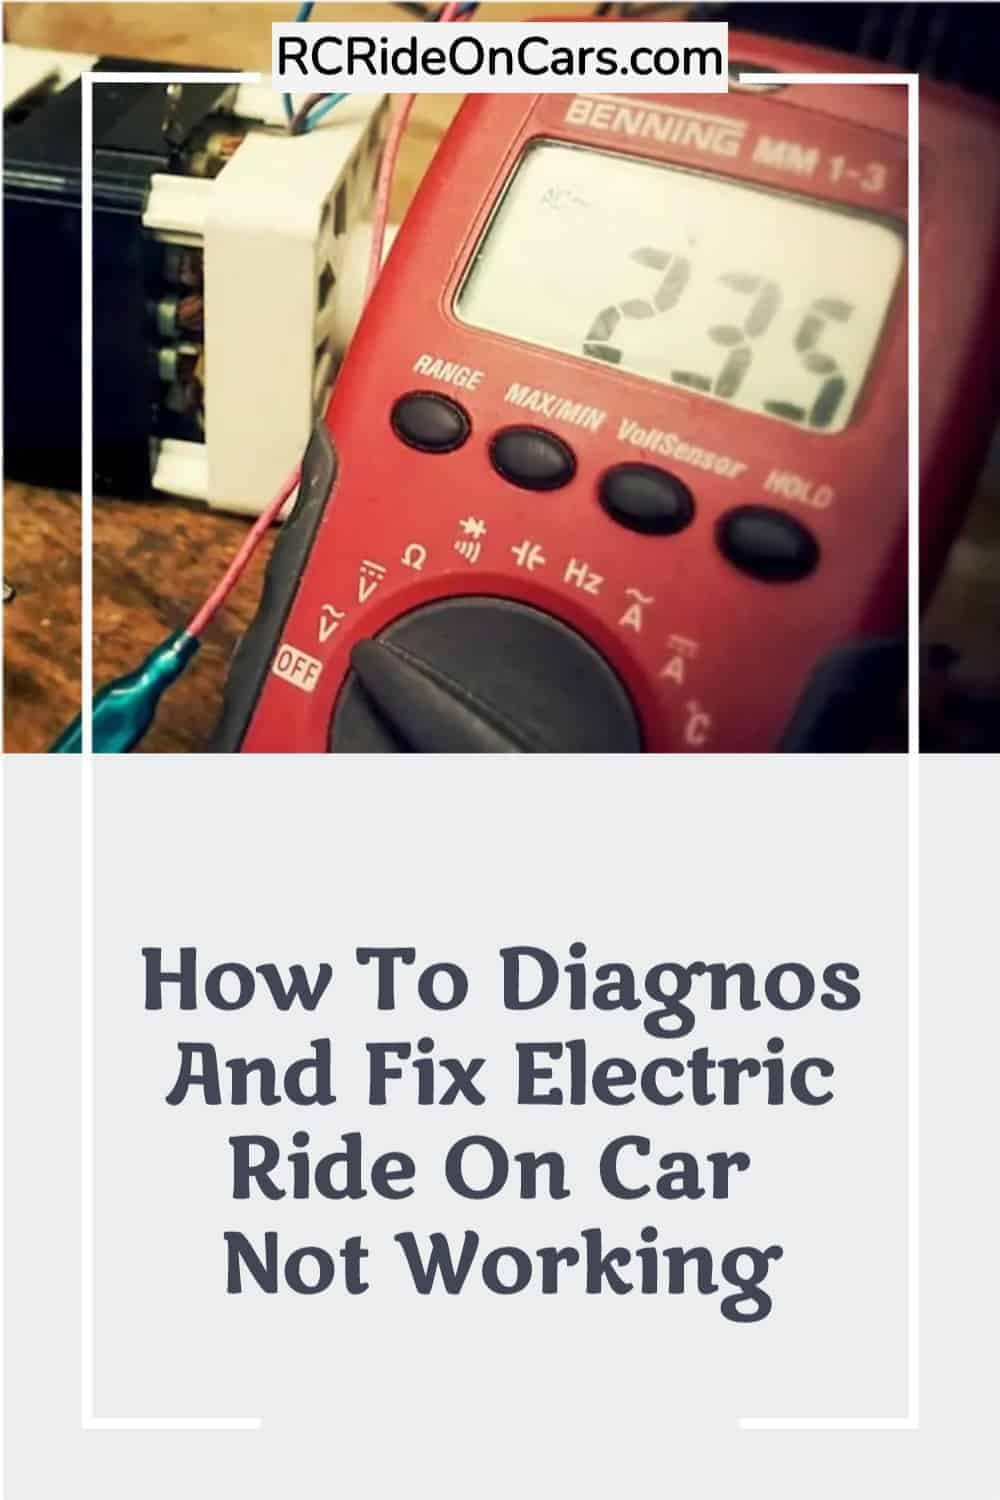 Electric Ride On Car Not Working